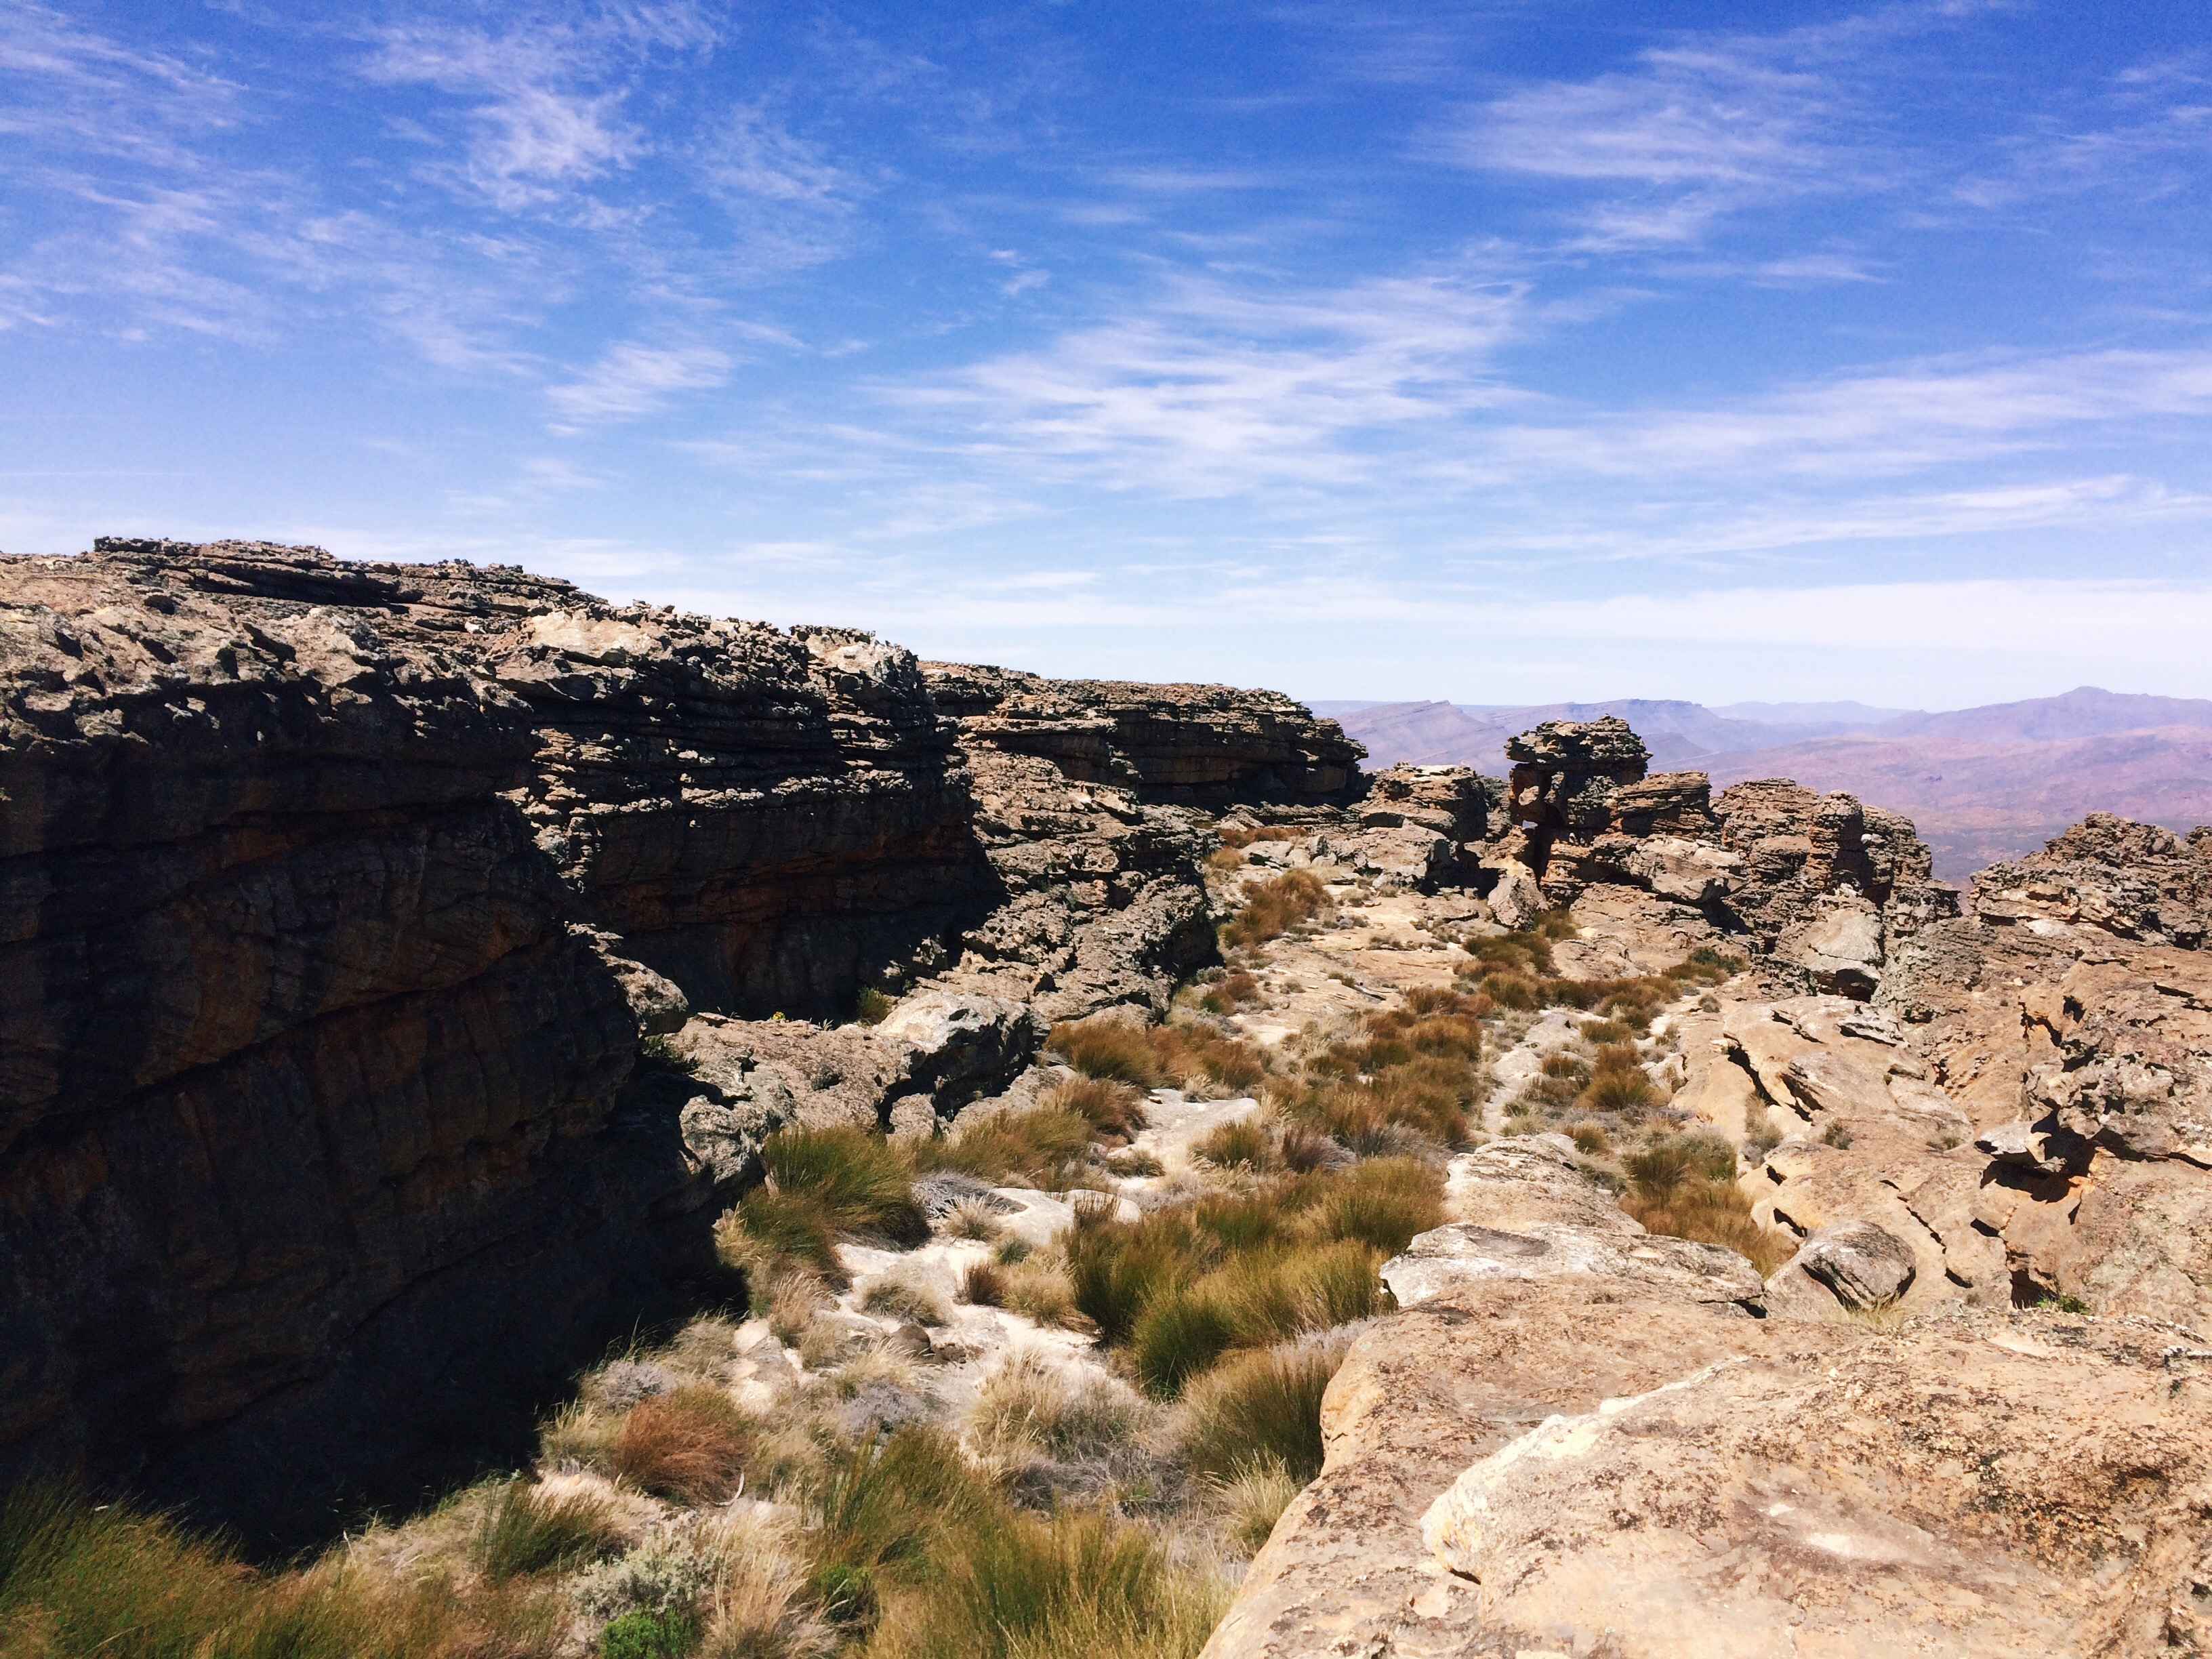 Plants spring up between the rocks - Wolfberg Cracks, Cederberg